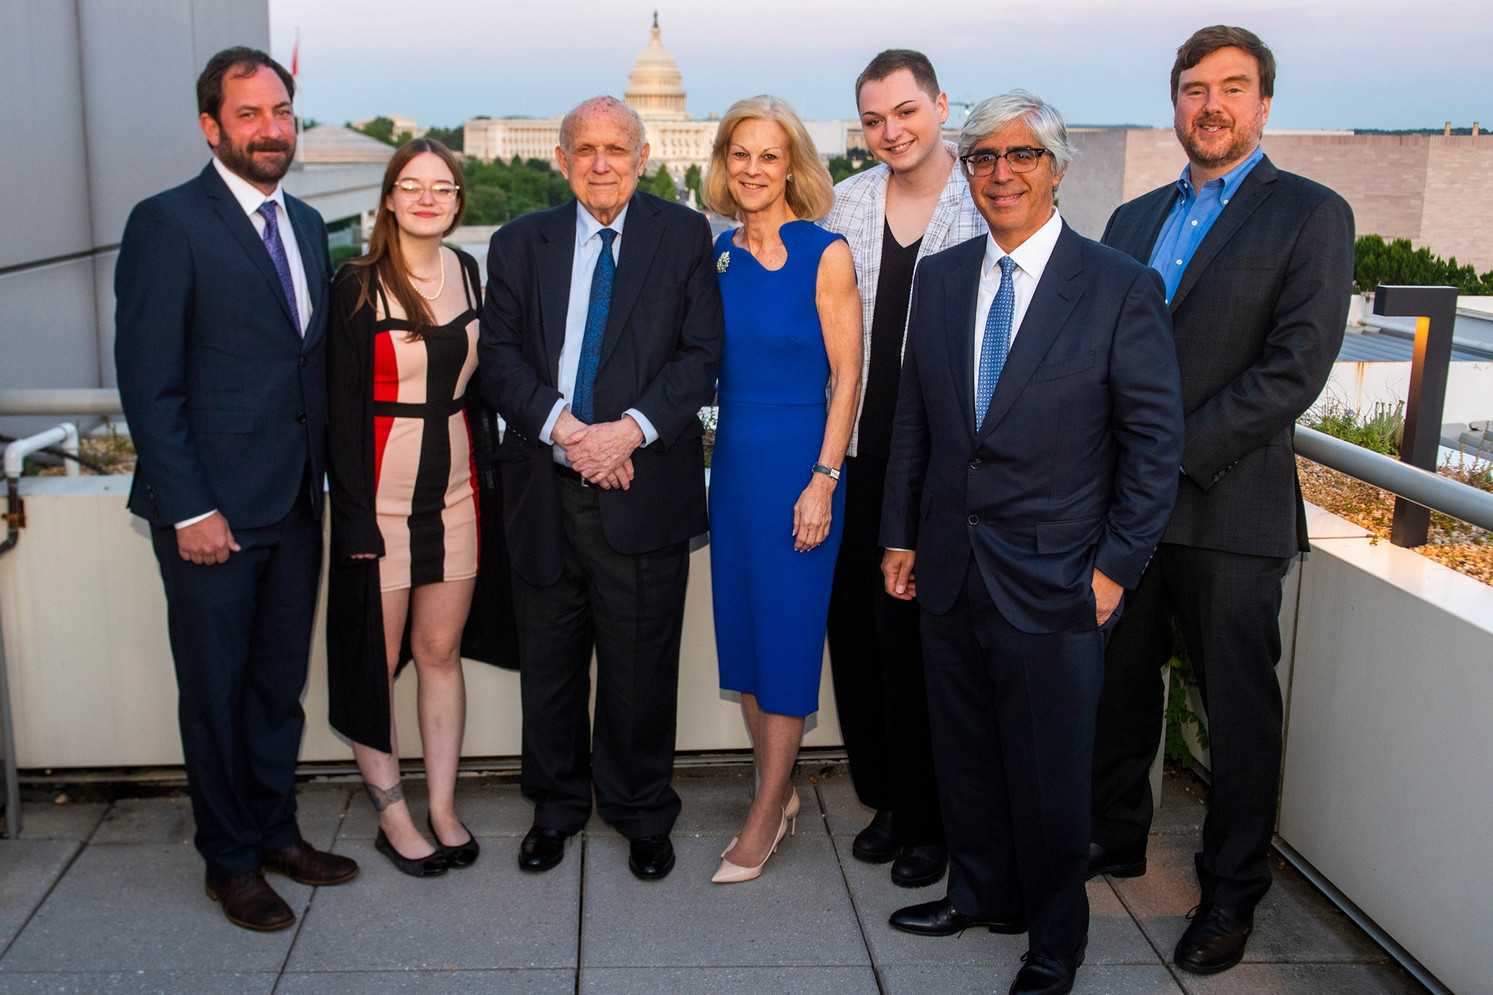 The 2019 Honorees: Dr. George Luber, Grace Marion, Floyd Abrams, Christie Hefner (Foundation President), Christian Bales, Ted Boutrous, Greg Lukianoff. Not pictured: Jonathan Haidt.